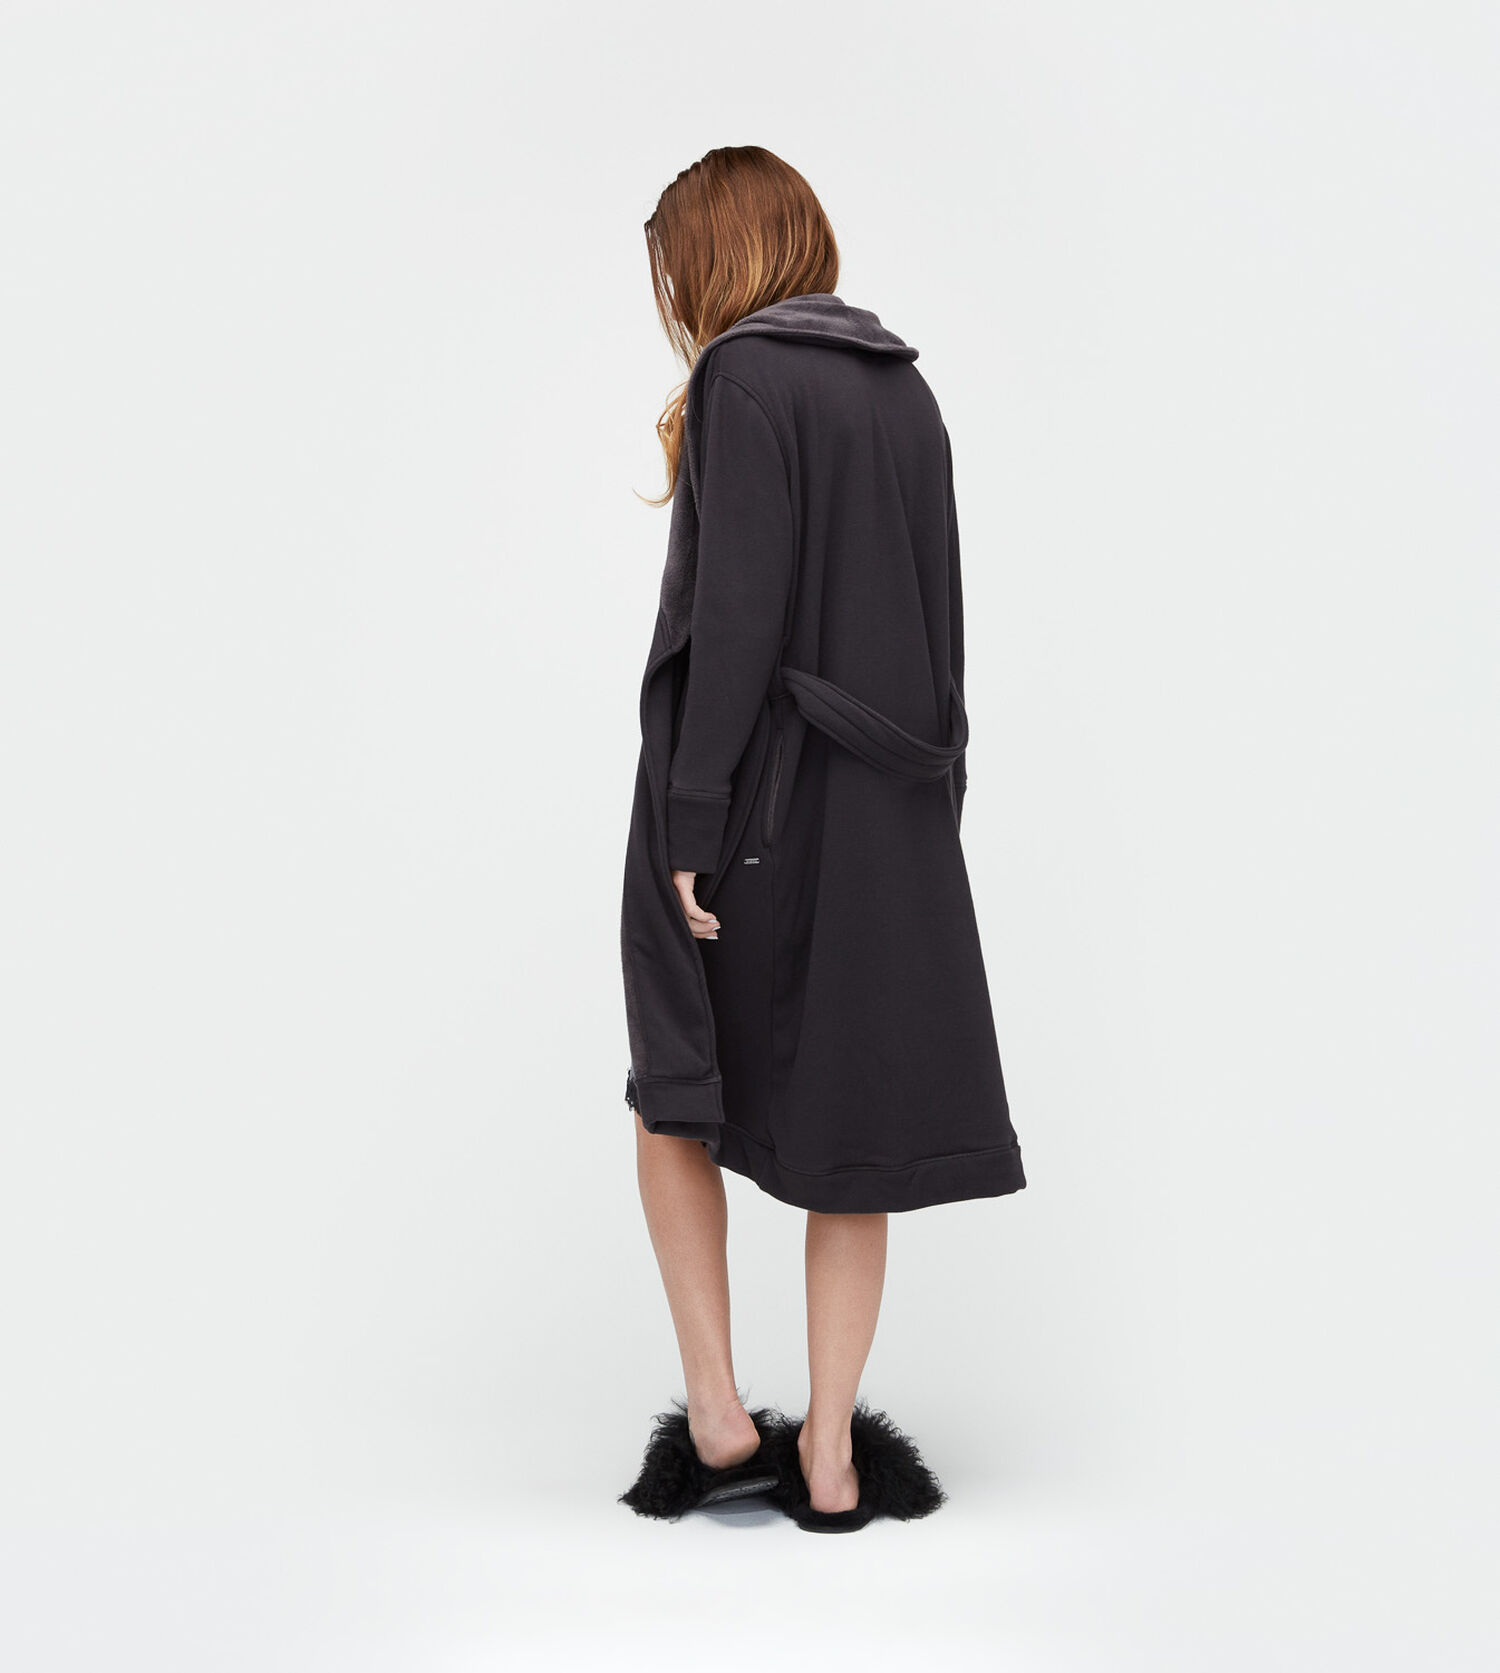 ugg duffield robe xs